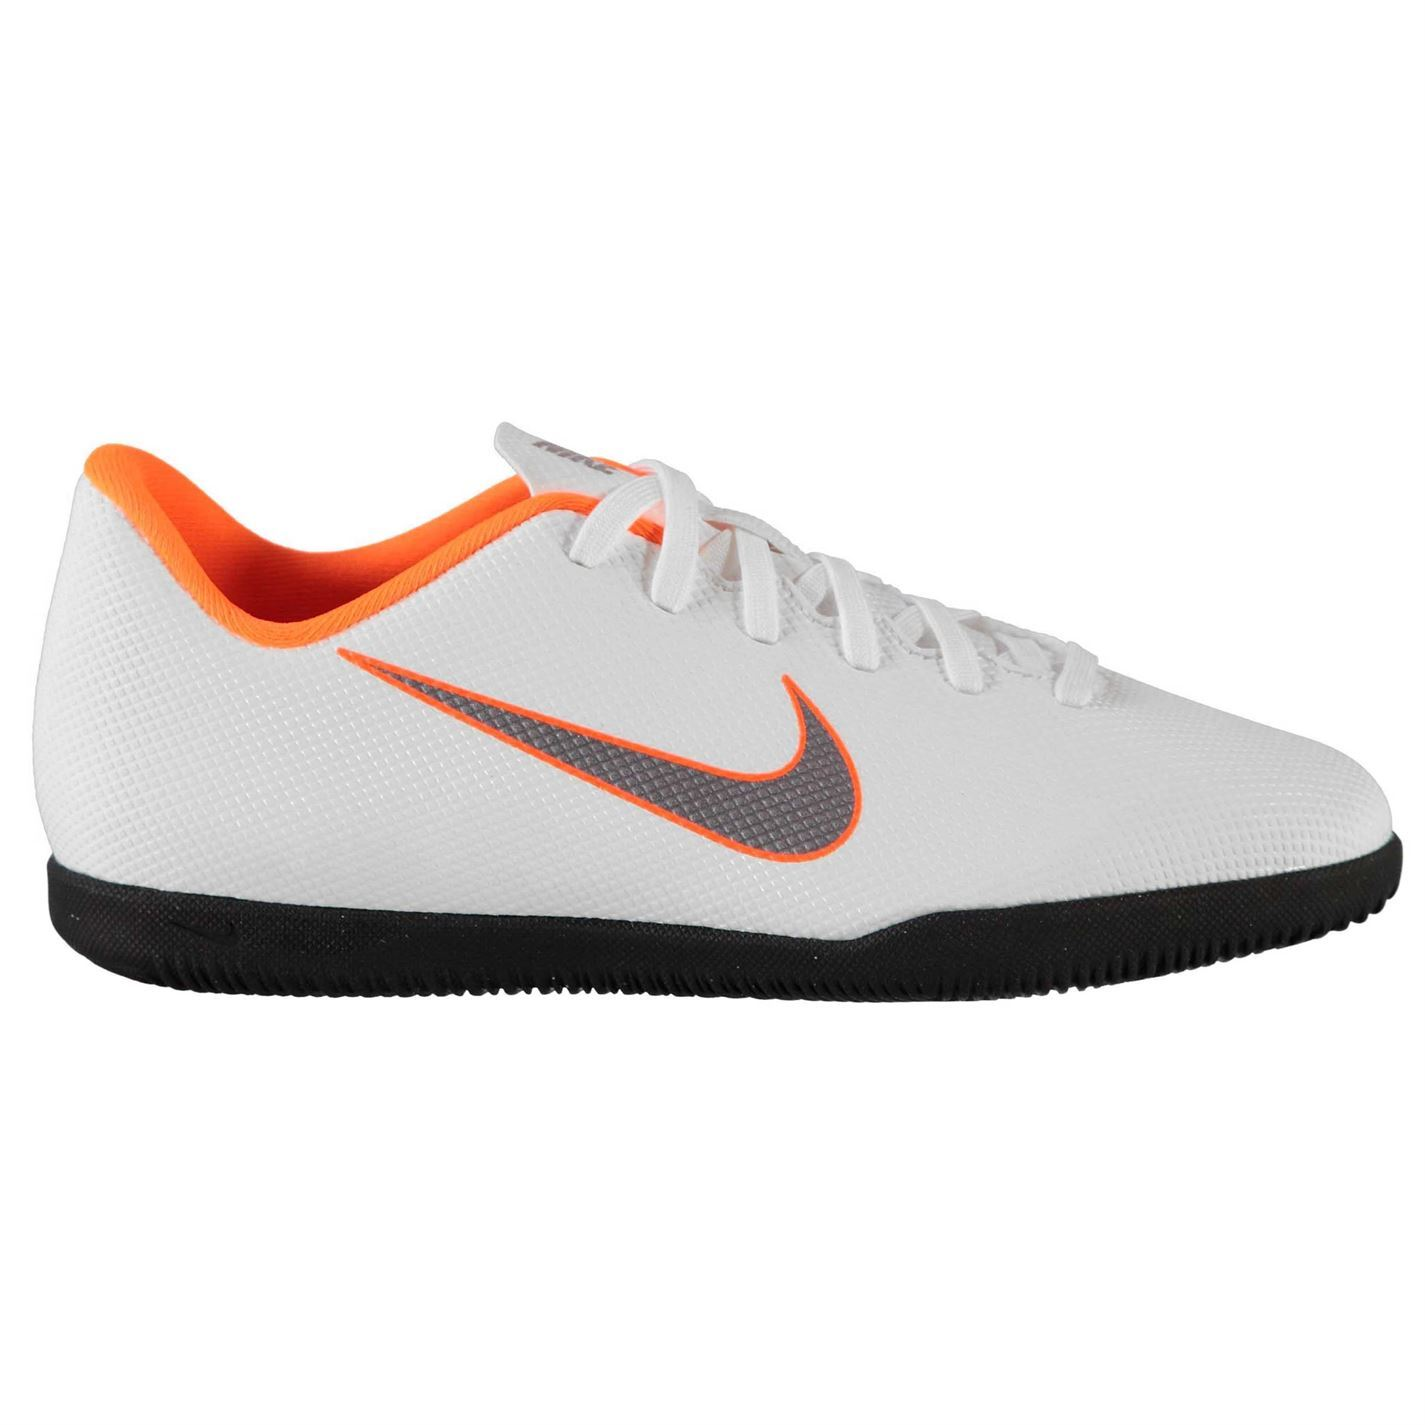 11018e151 Soccer Club Indoor Vapor Juniors Mercurial Football Trainers Nike qE0tpwq